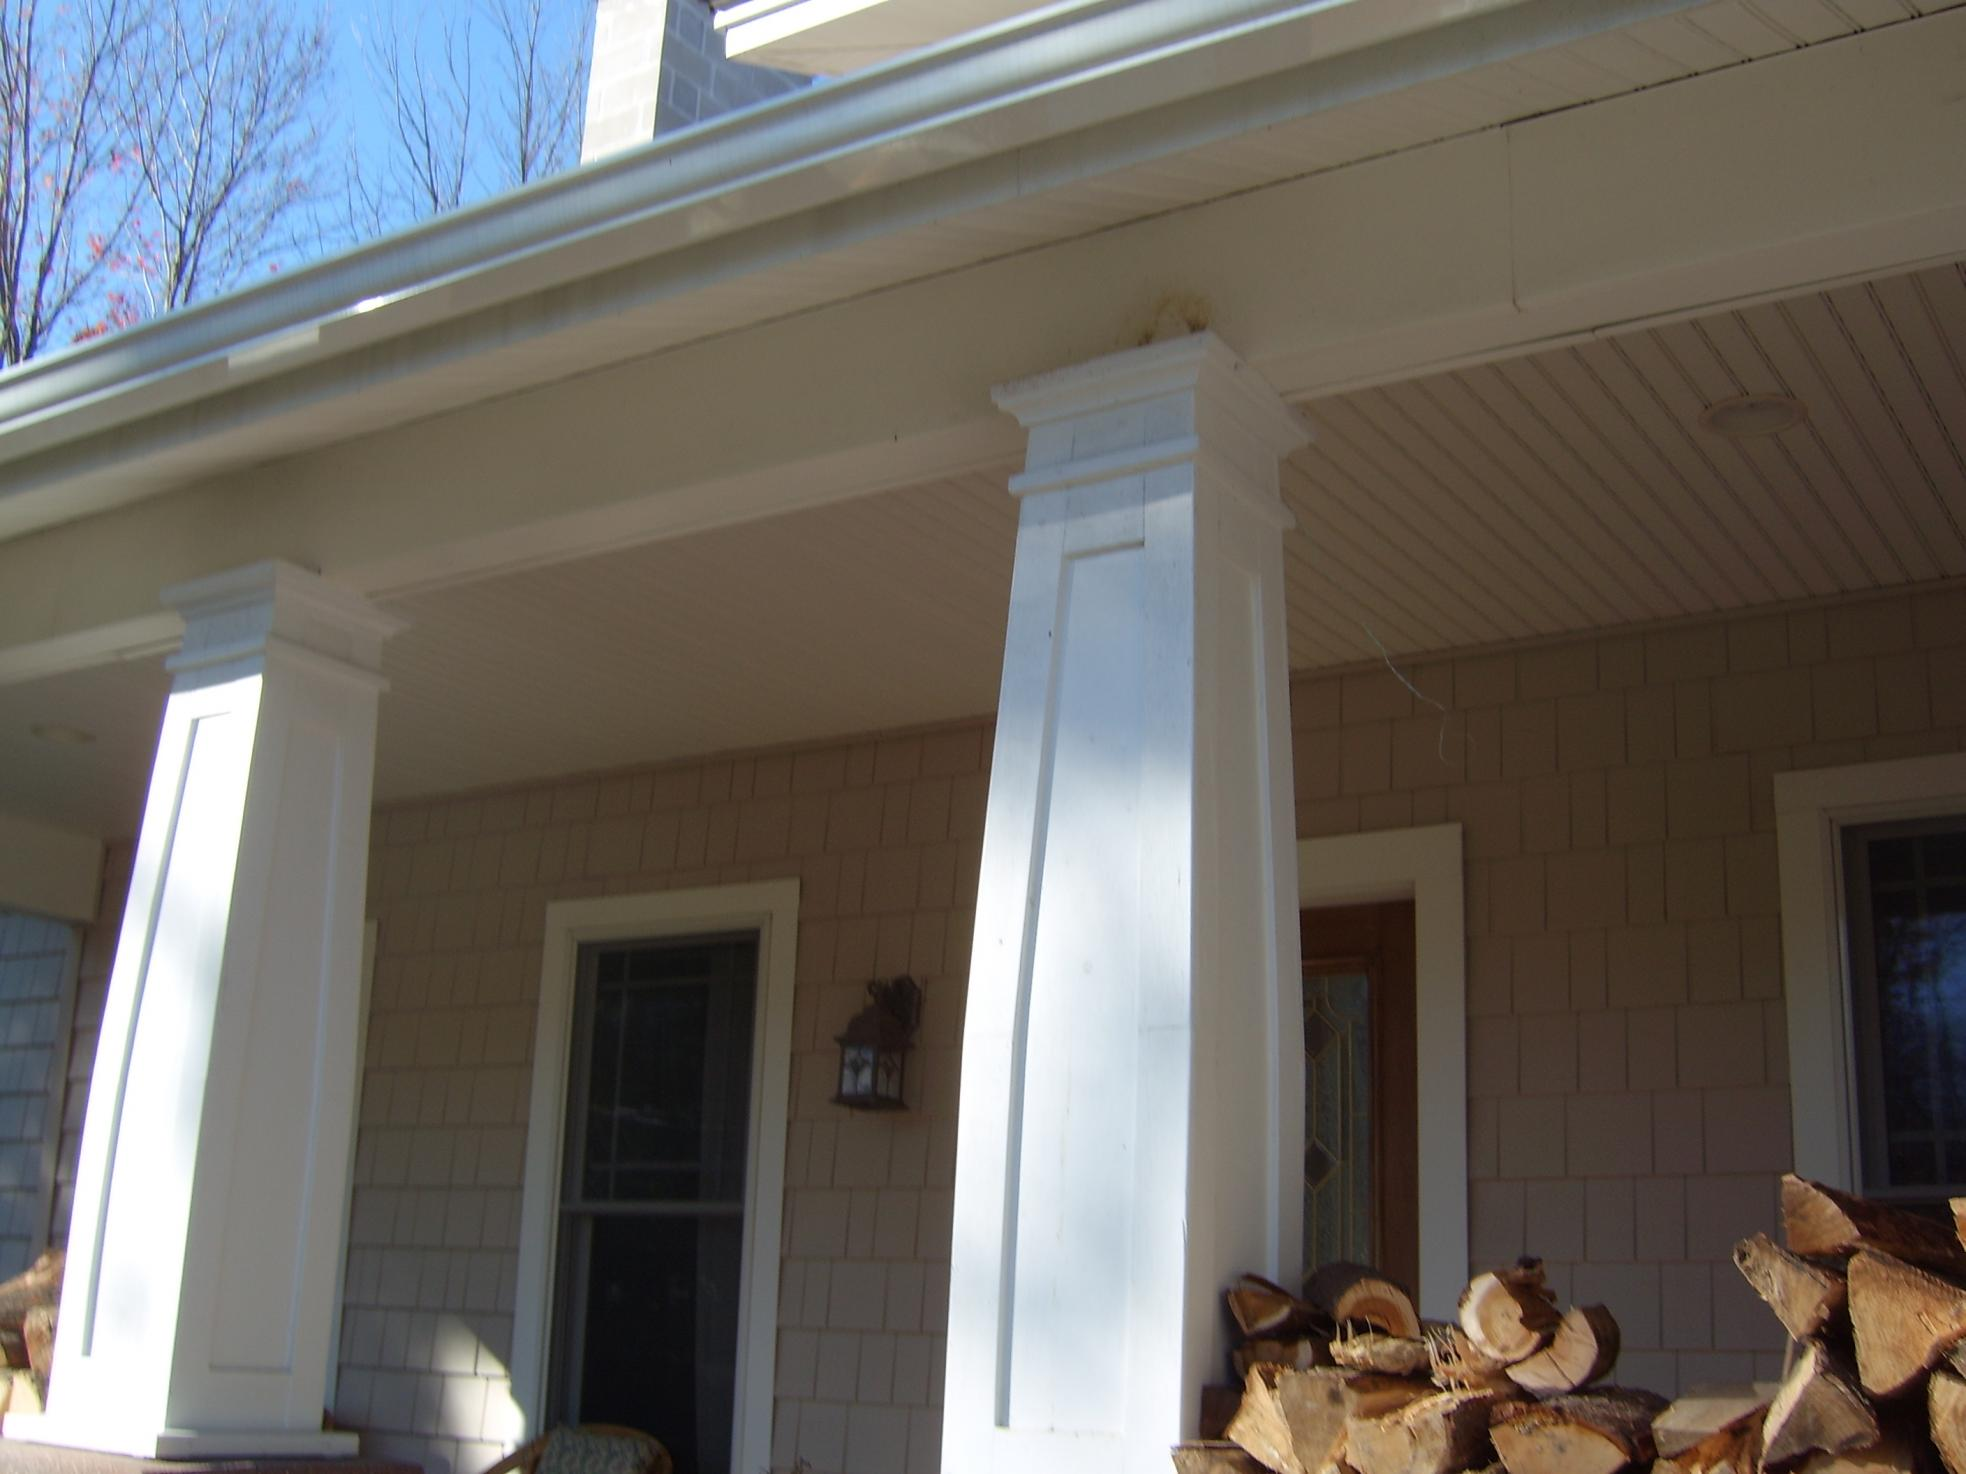 budd home columns services severino index decorative porch advanced exteriors aluminum